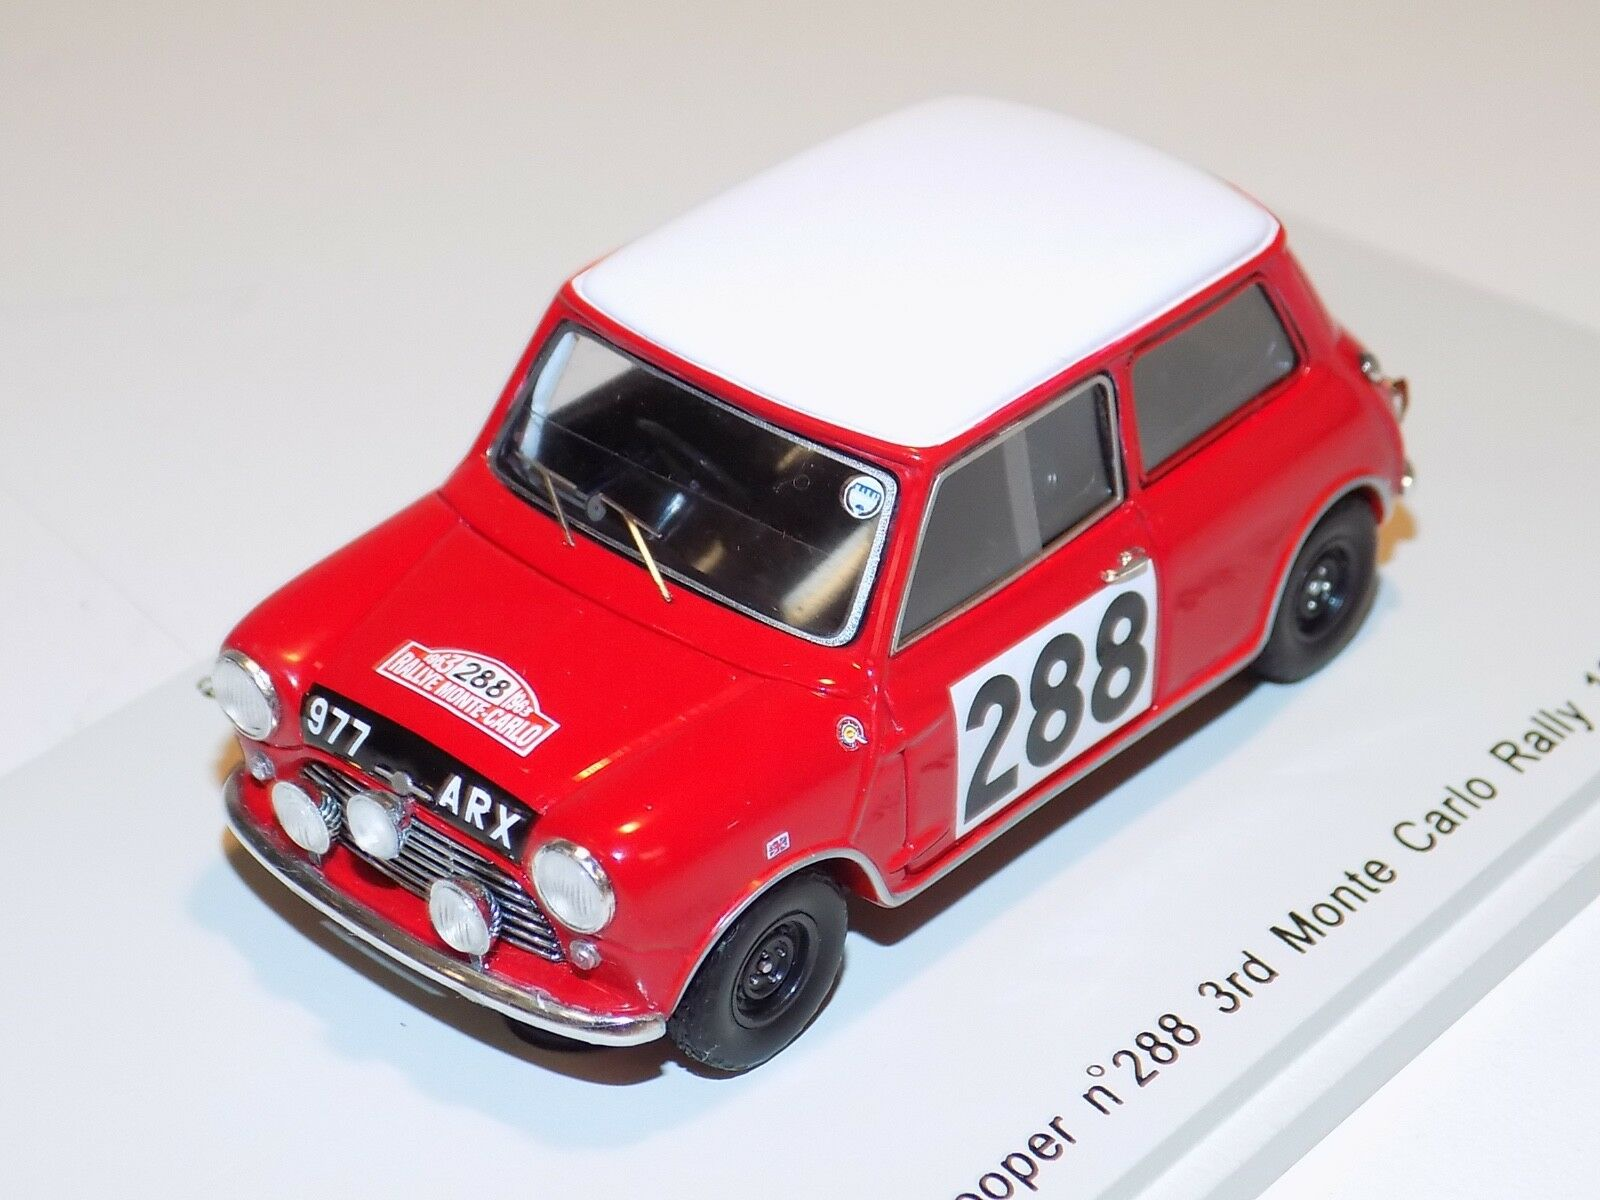 1 43 Spark Morris Mini Cooper Voiture  288 1963 RALLY MONTE CARLO 3rd Place S1187